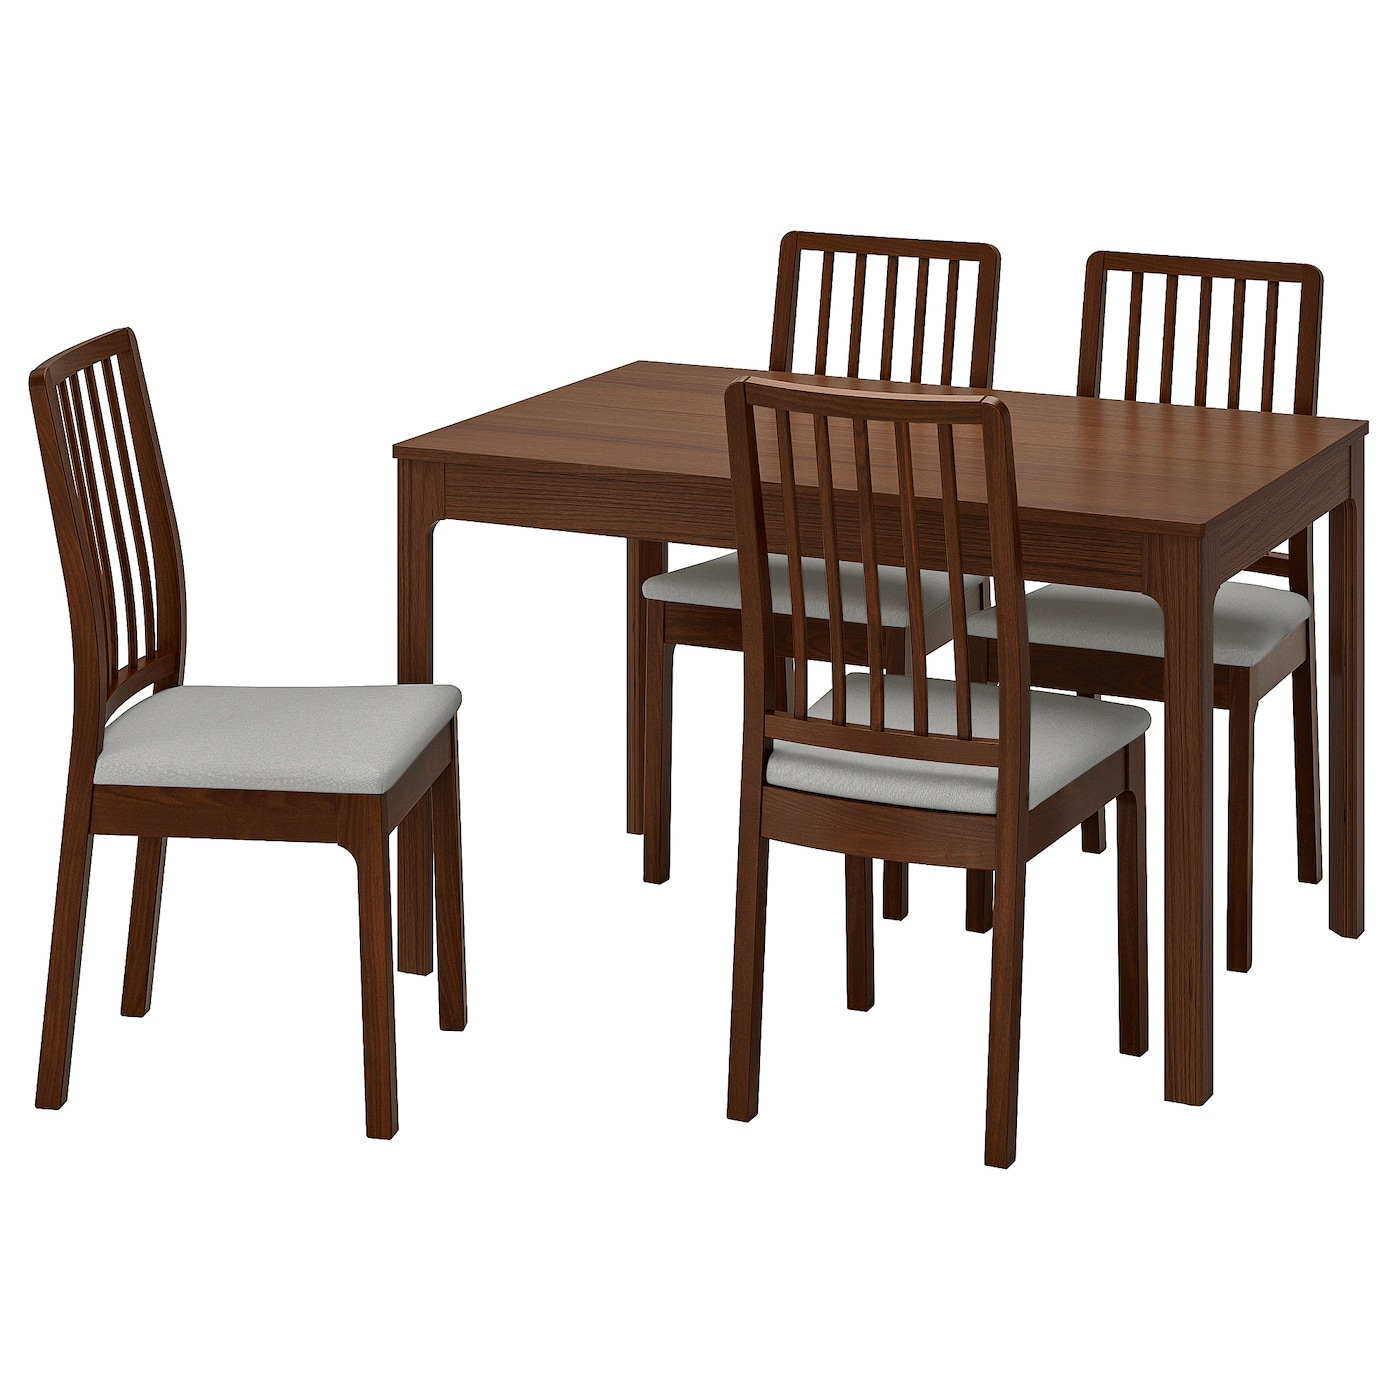 IKEA EKEDALEN/EKEDALEN table and 4 chairs